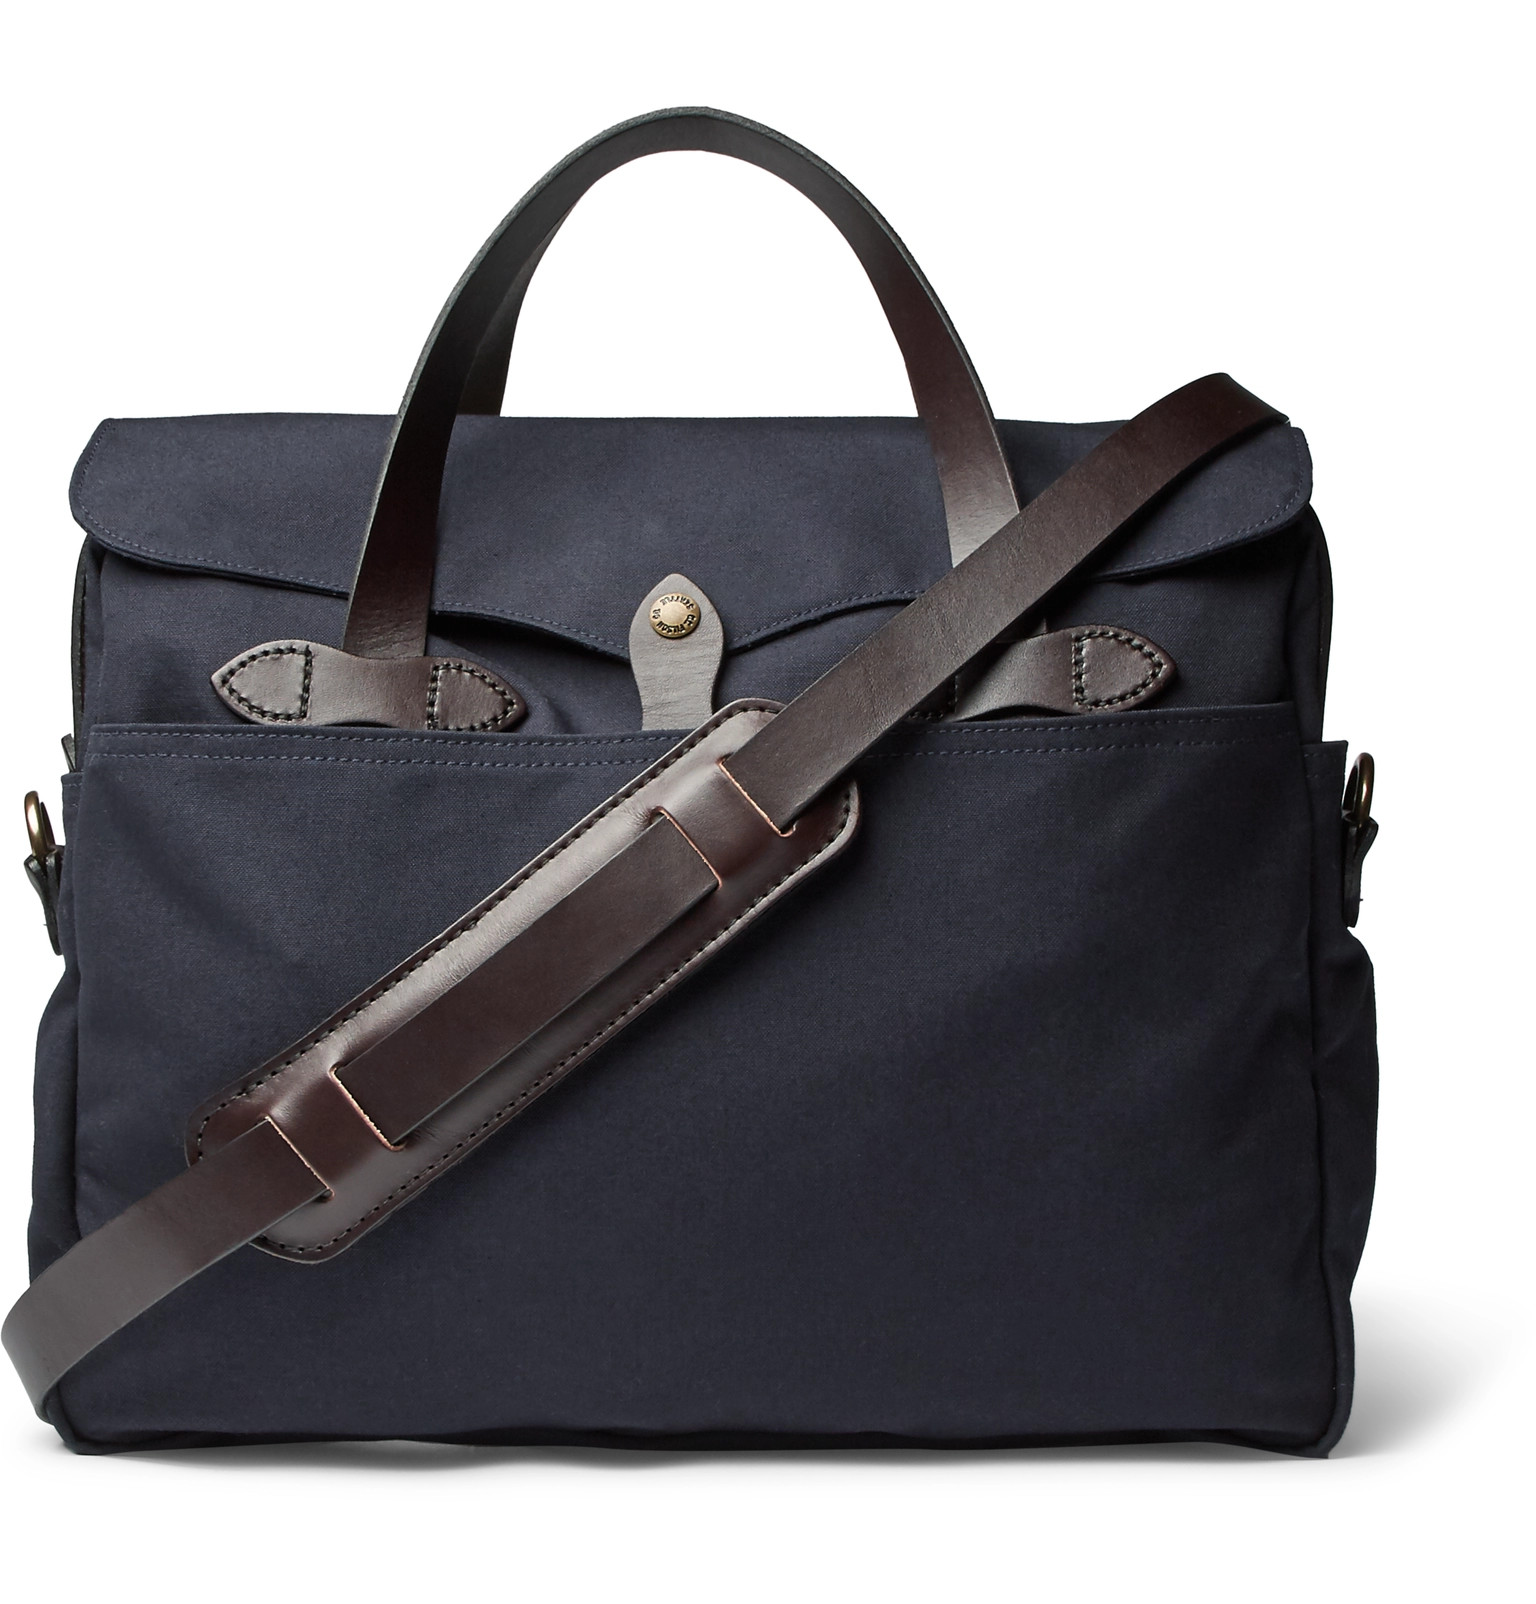 Filson Bags Exclusively For Mr Porter images